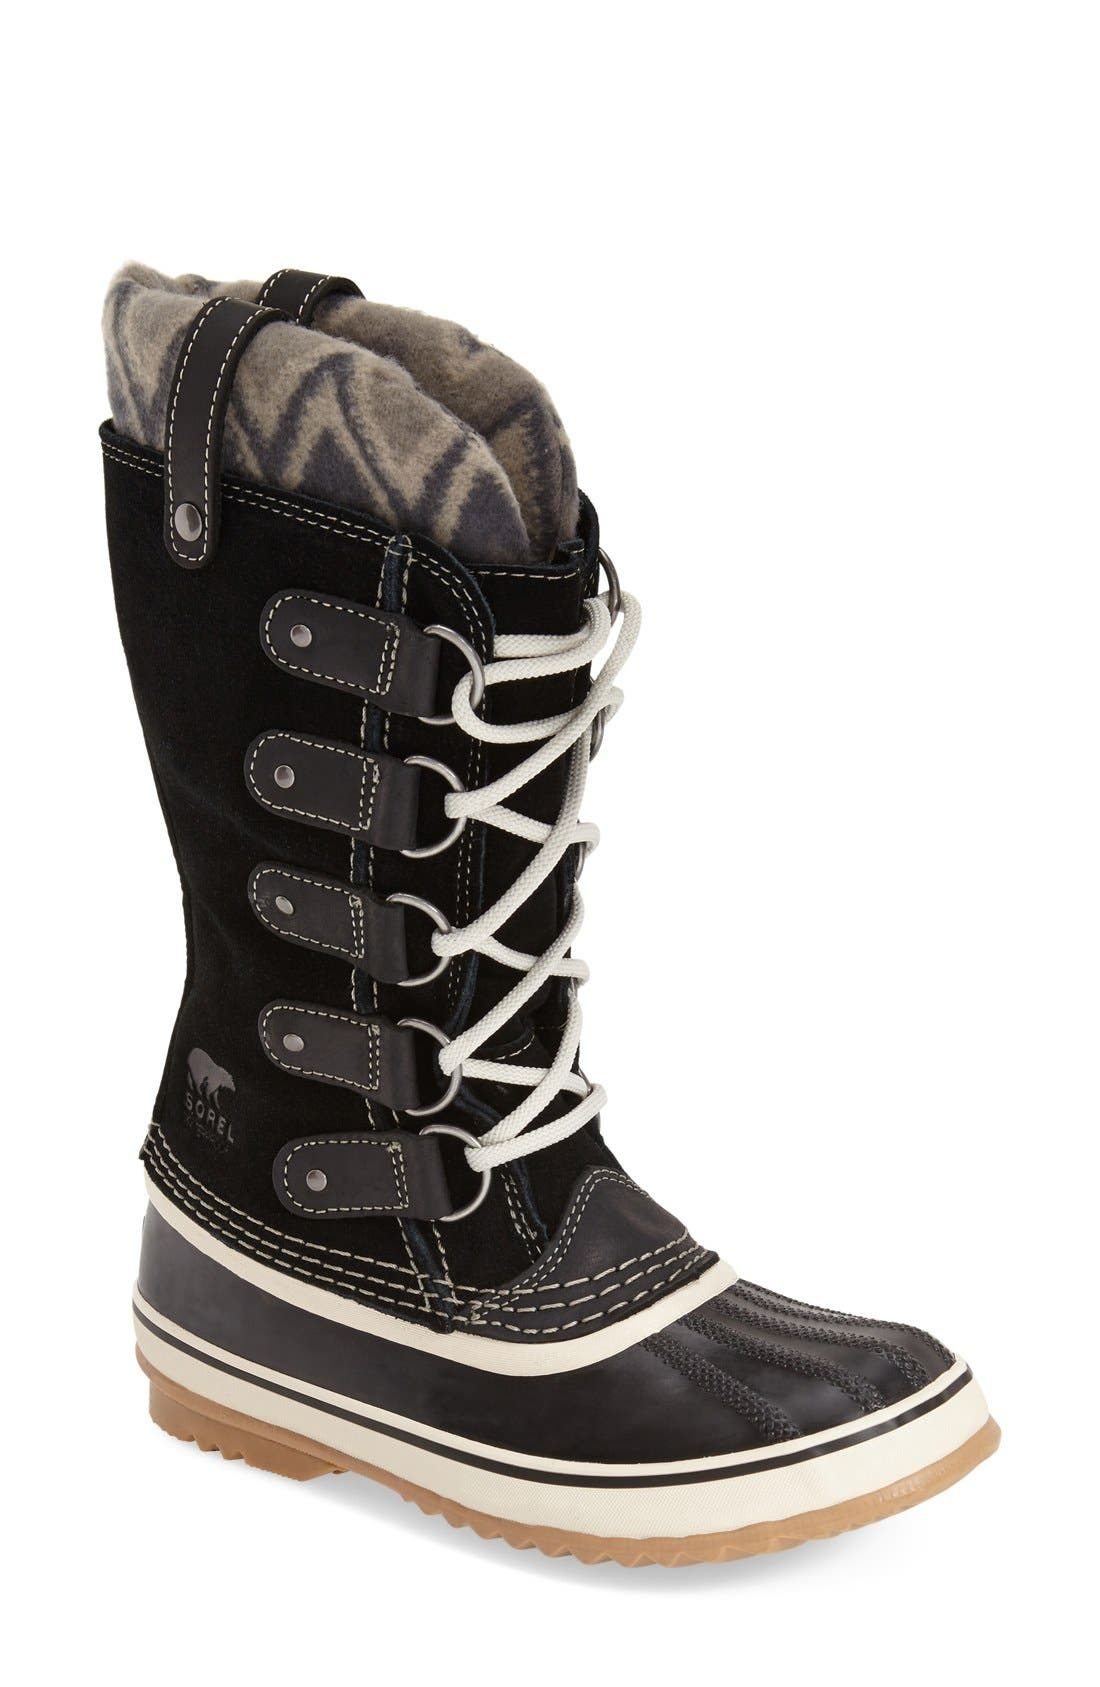 SOREL 'Joan of Arctic - Knit II' Waterproof Boot, Main, color, 010